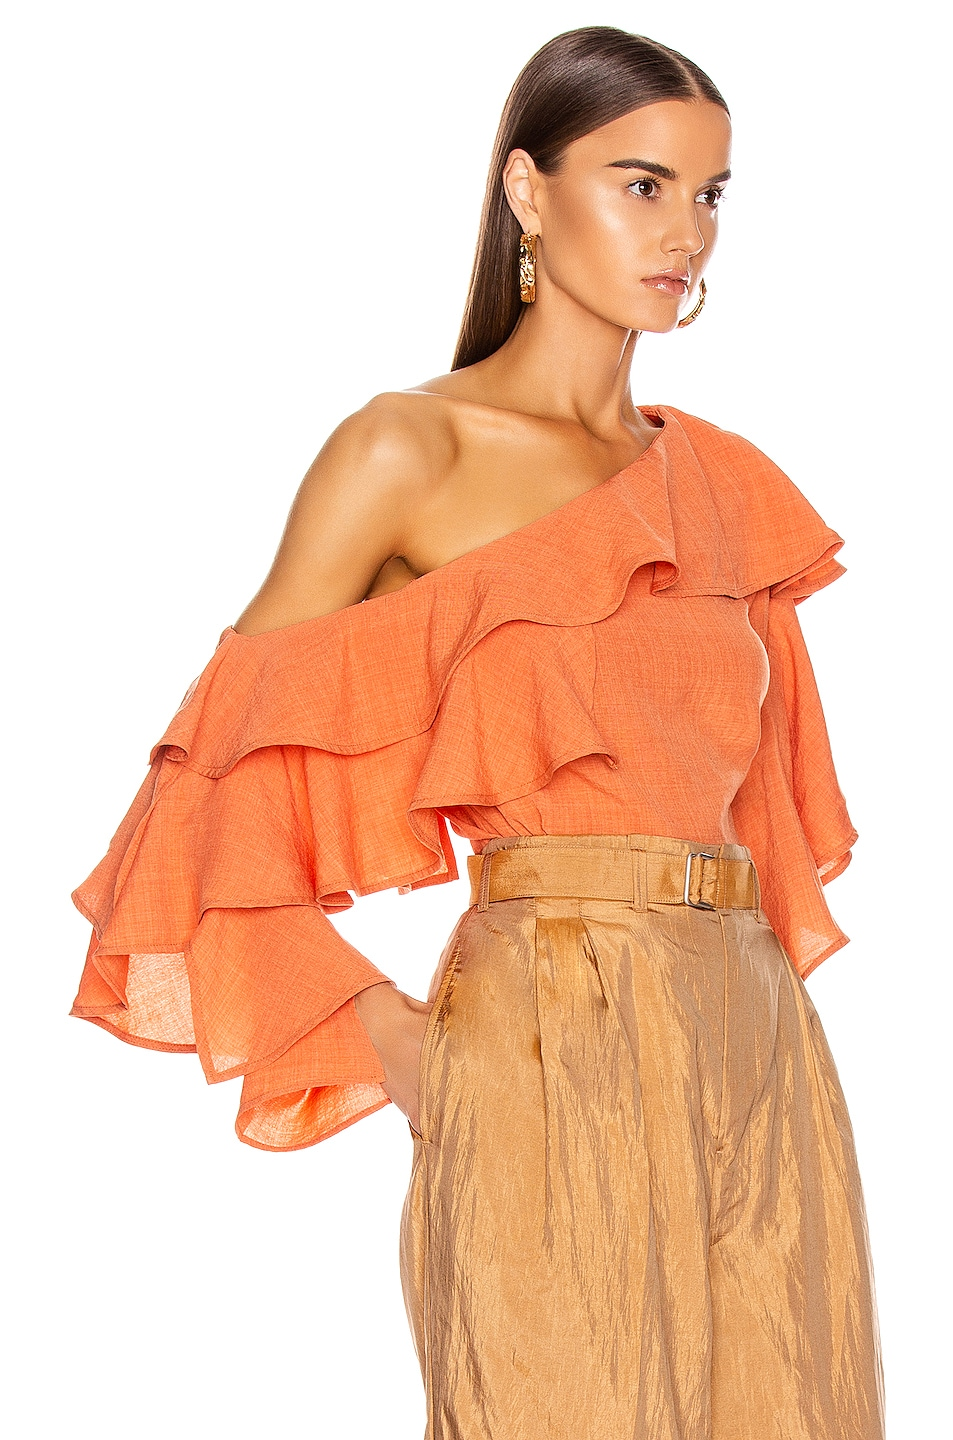 Image 2 of Atoir Give A Little Top in Sunset Orange